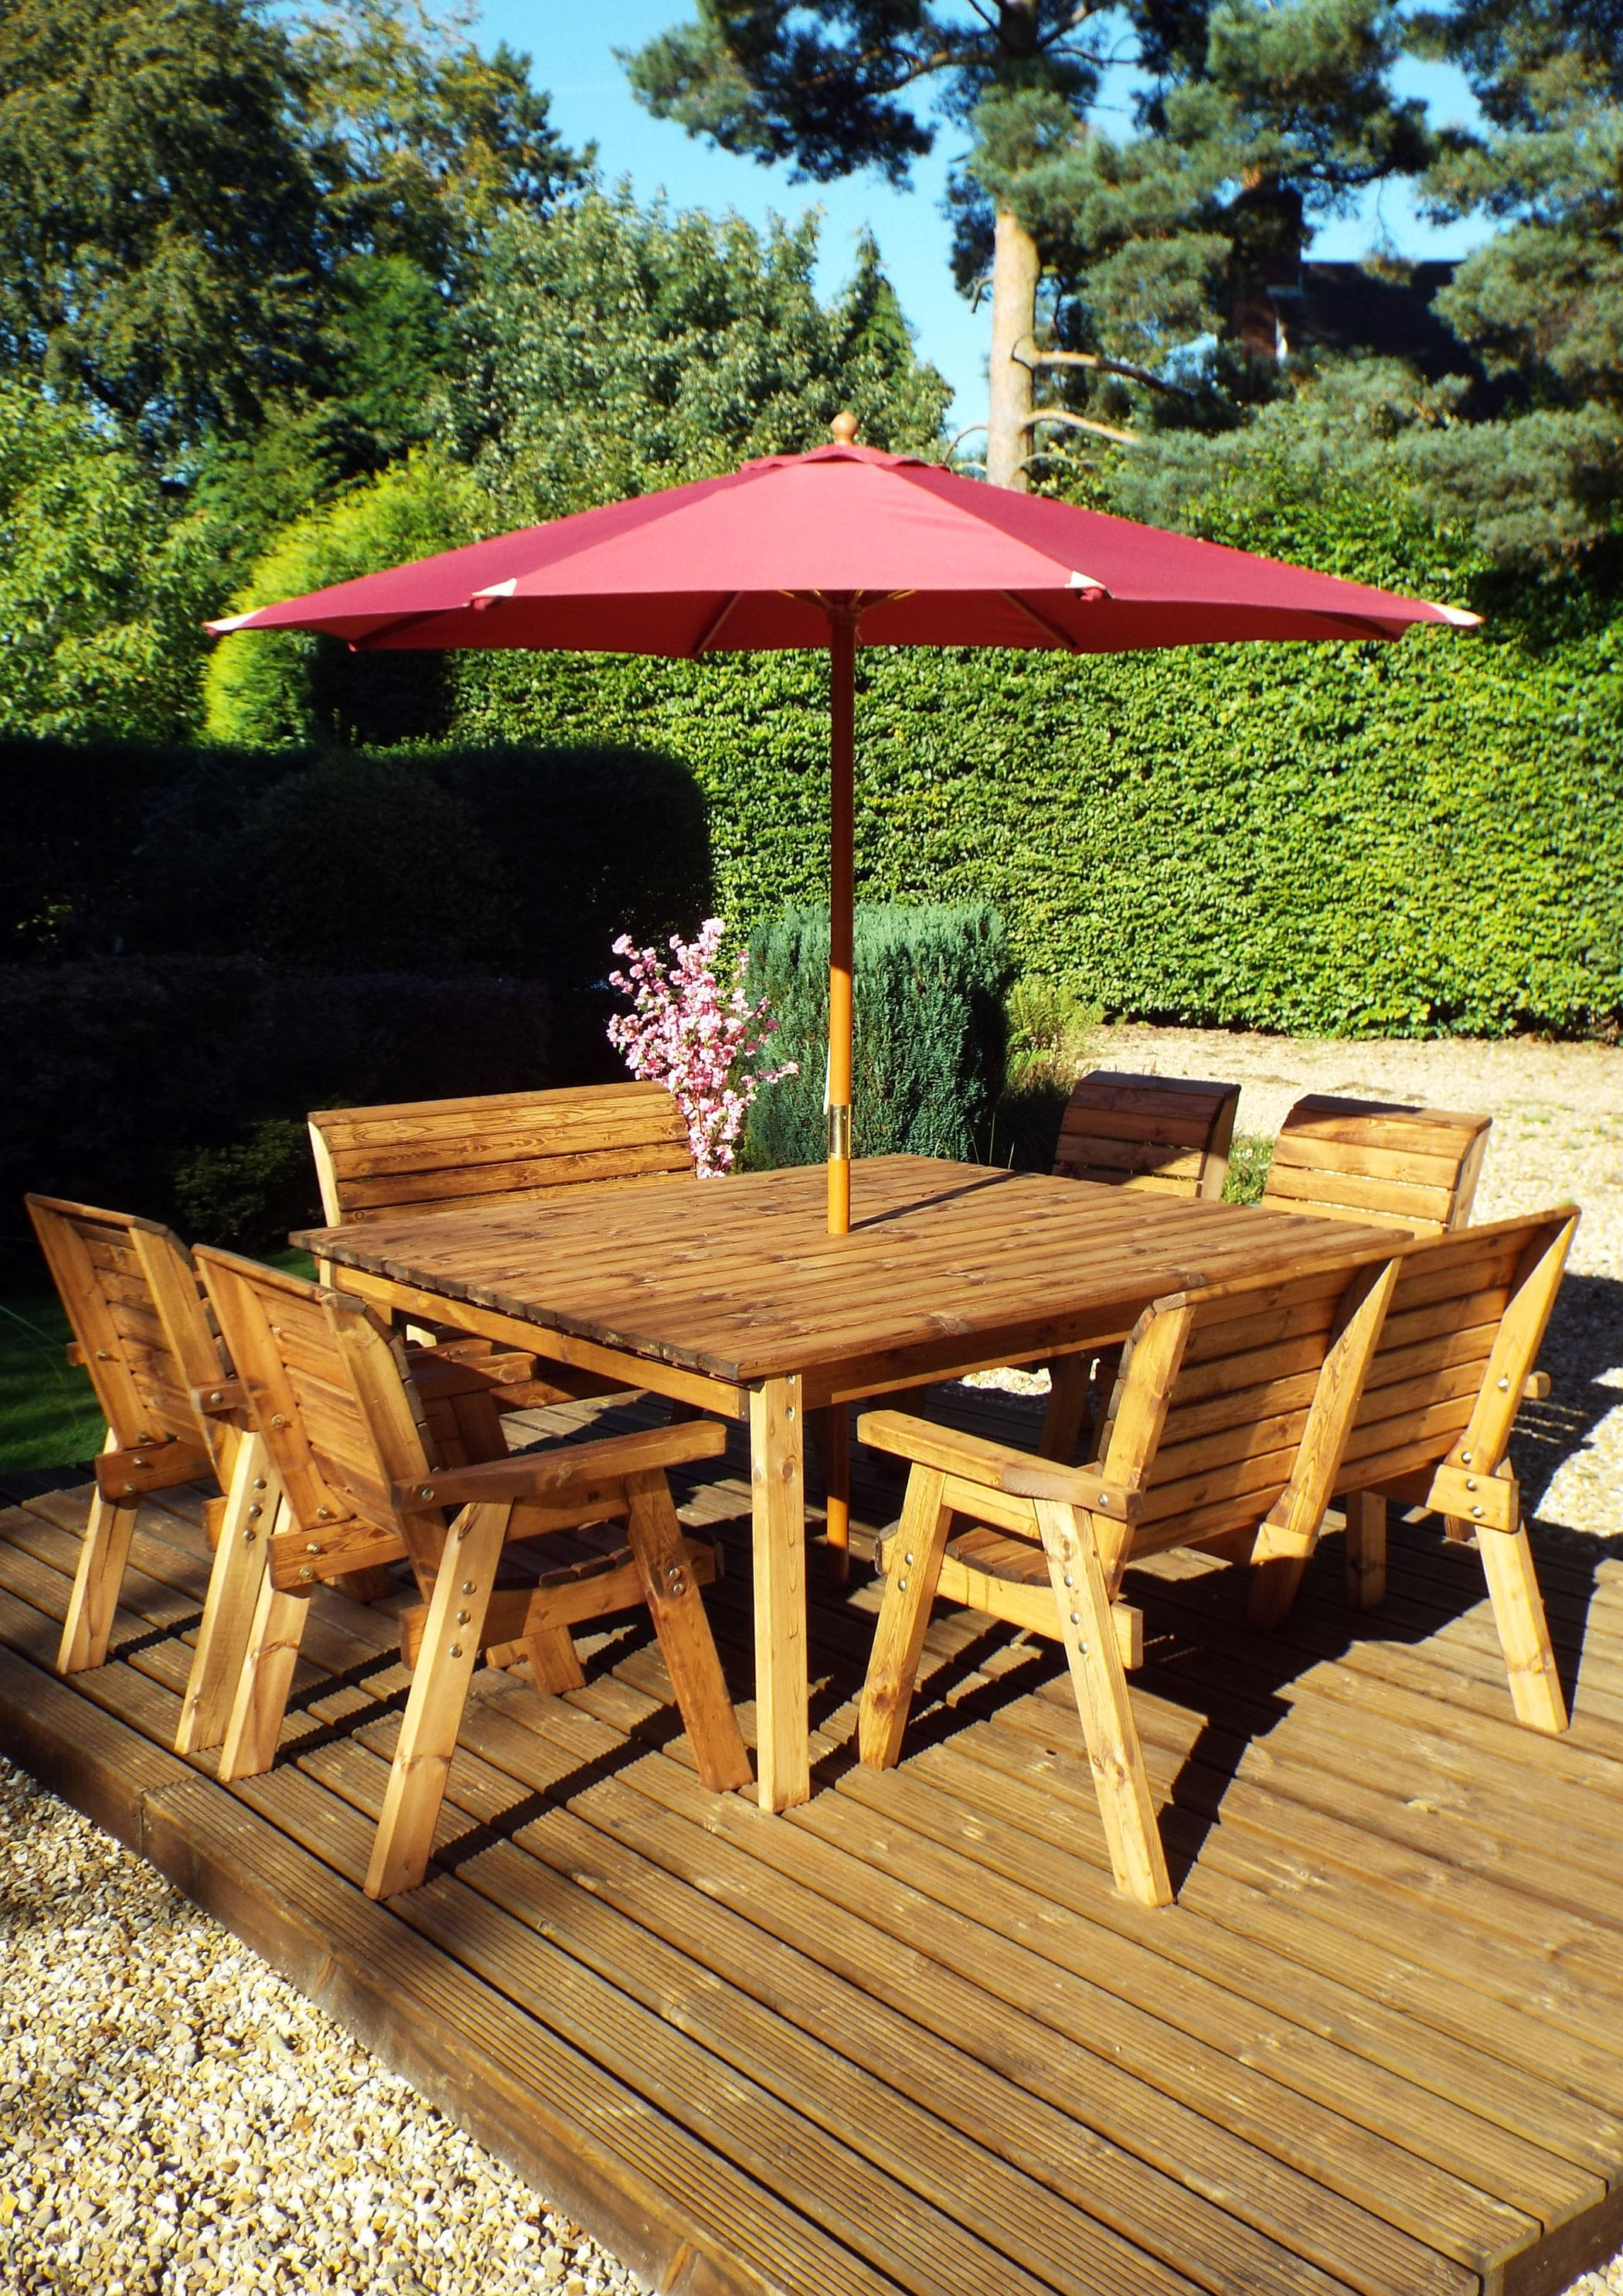 8 Seater Wooden Garden Table Bench And Chair Set Dining Set